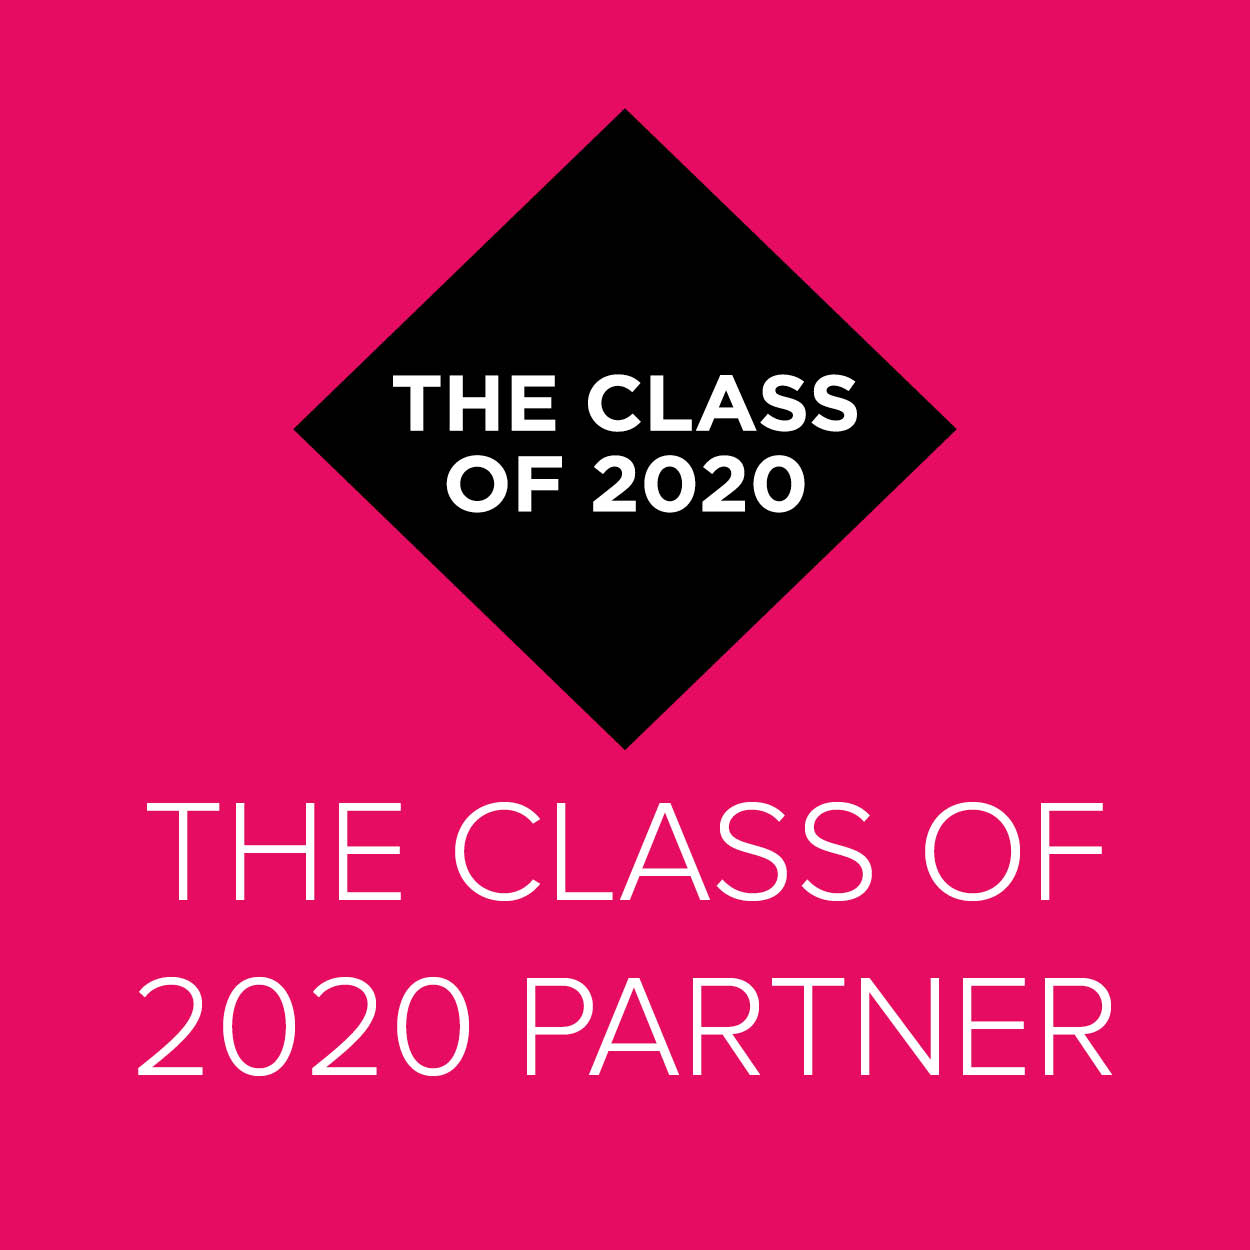 The Class of 2020 Partner